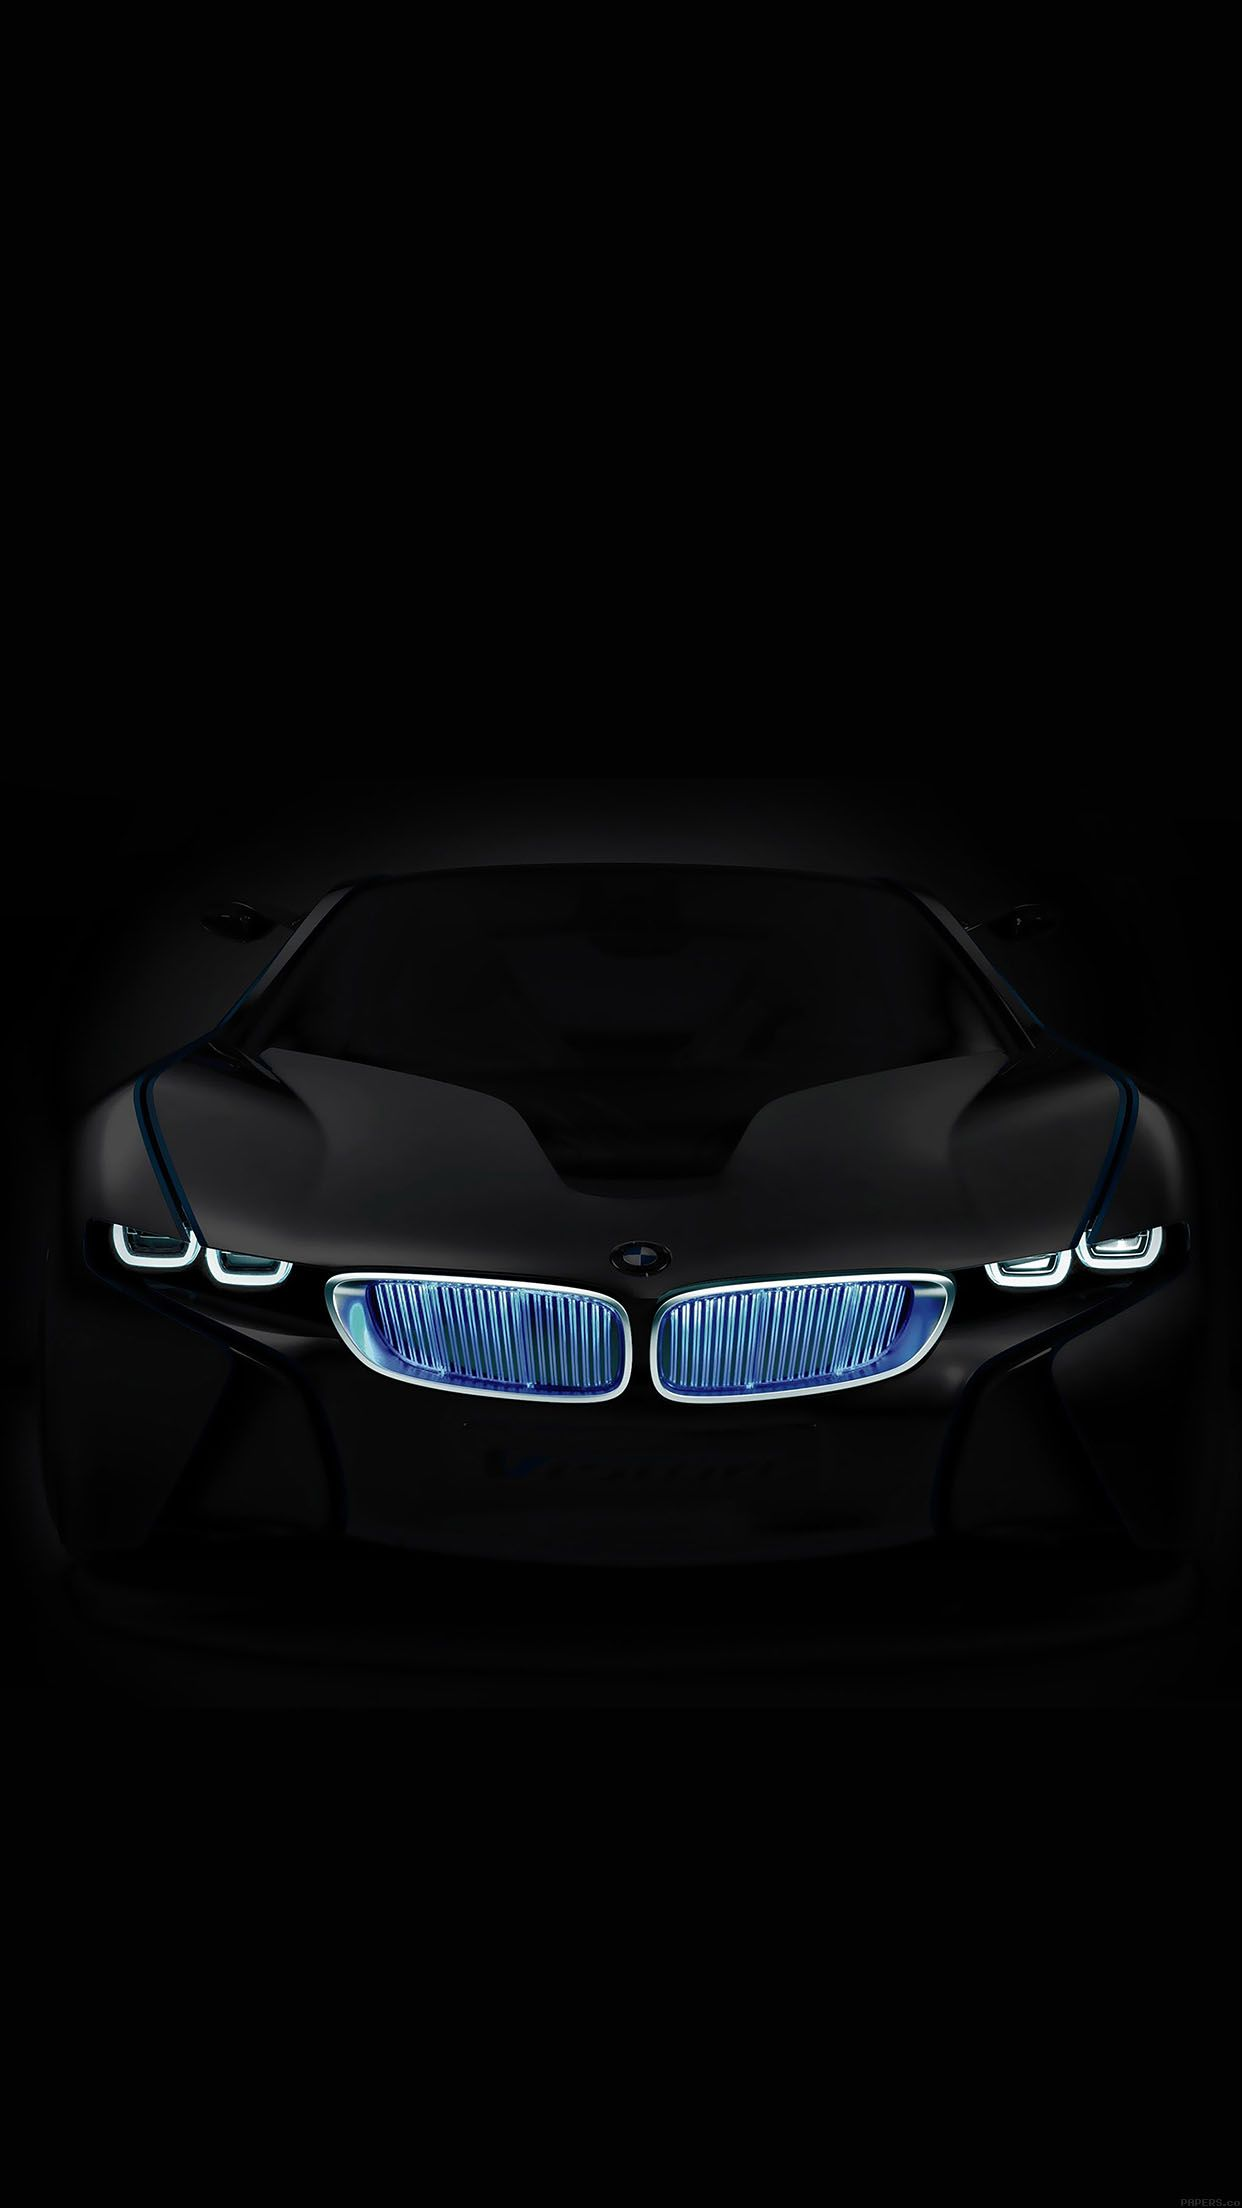 Bmw Logo Iphone Wallpaper P3 Bmw Hud Bmw Wallpapers Bmw Iphone